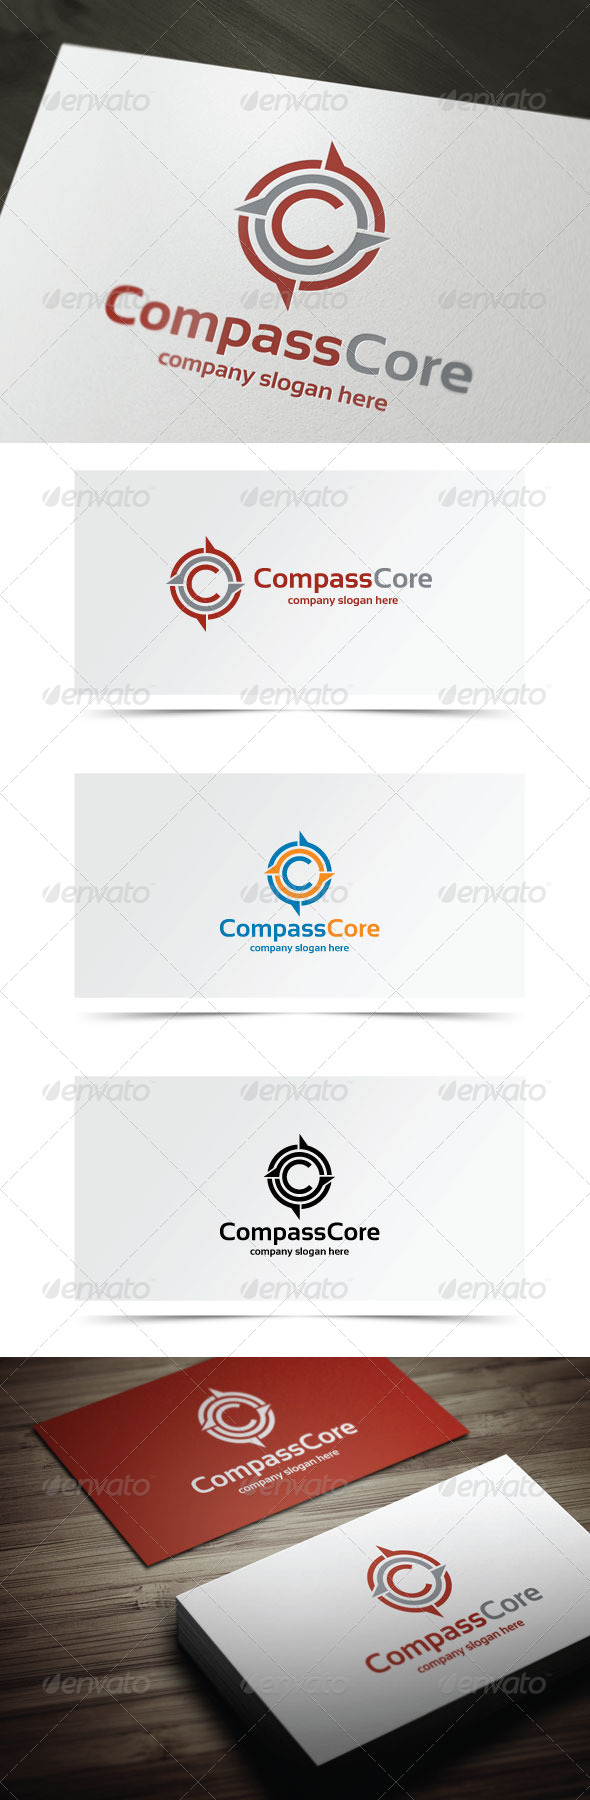 GraphicRiver Compass Core 8375190